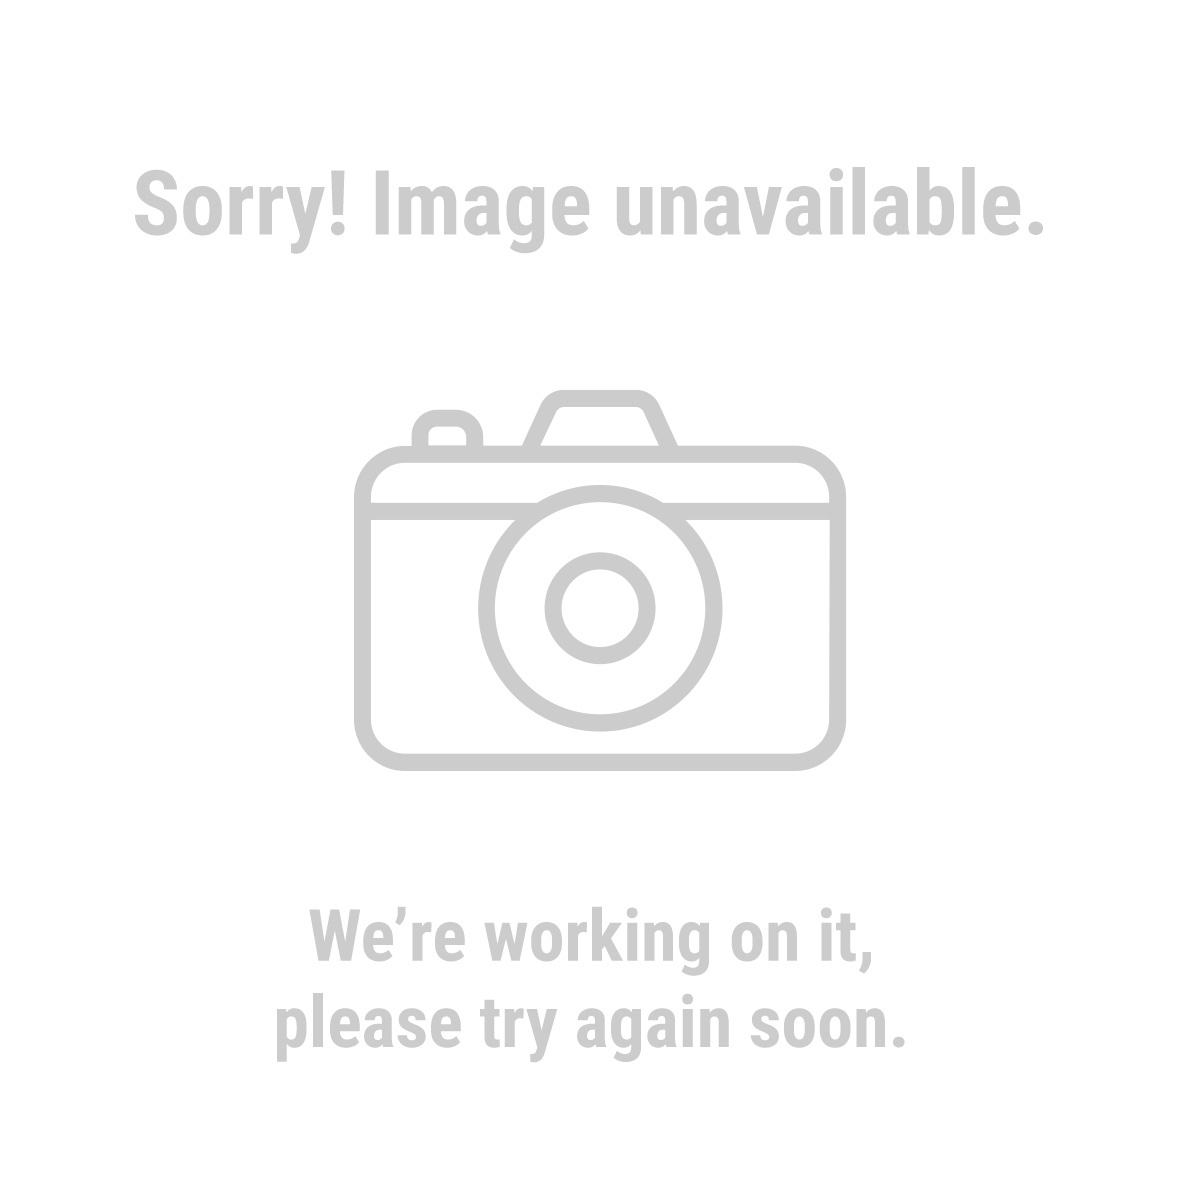 Meguiar's 95515 64 Oz. Deep Crystal® Car Wash